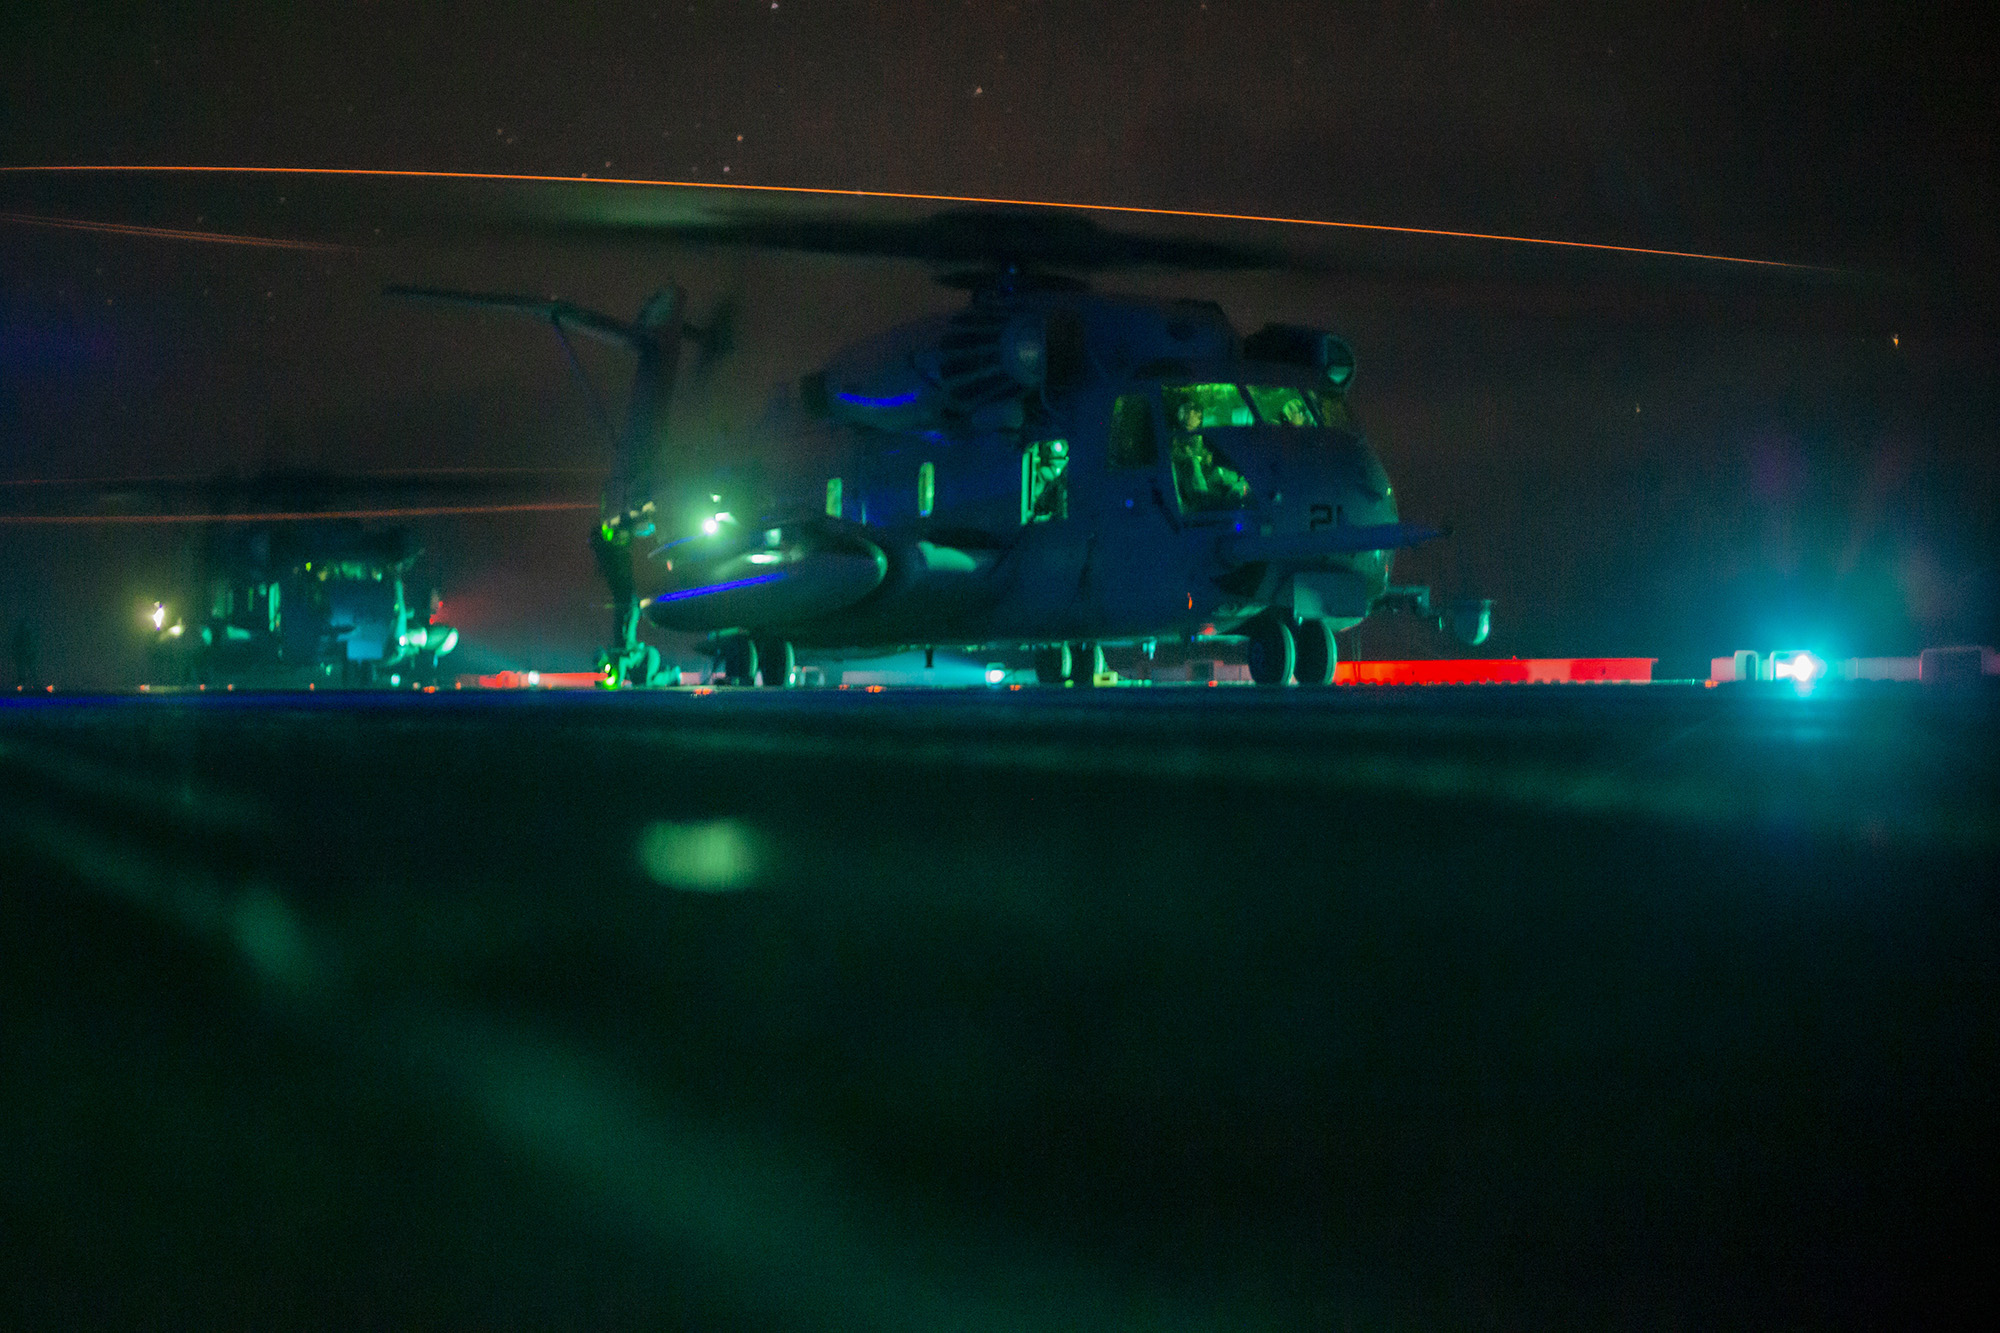 Marines in a CH-53E Super Stallion prepare for takeoff from the flight deck of the amphibious assault ship USS Makin Island (LHD 8) on Oct. 18, 2020, in the Pacific Ocean. (Sgt. Sarah Stegall/Marine Corps